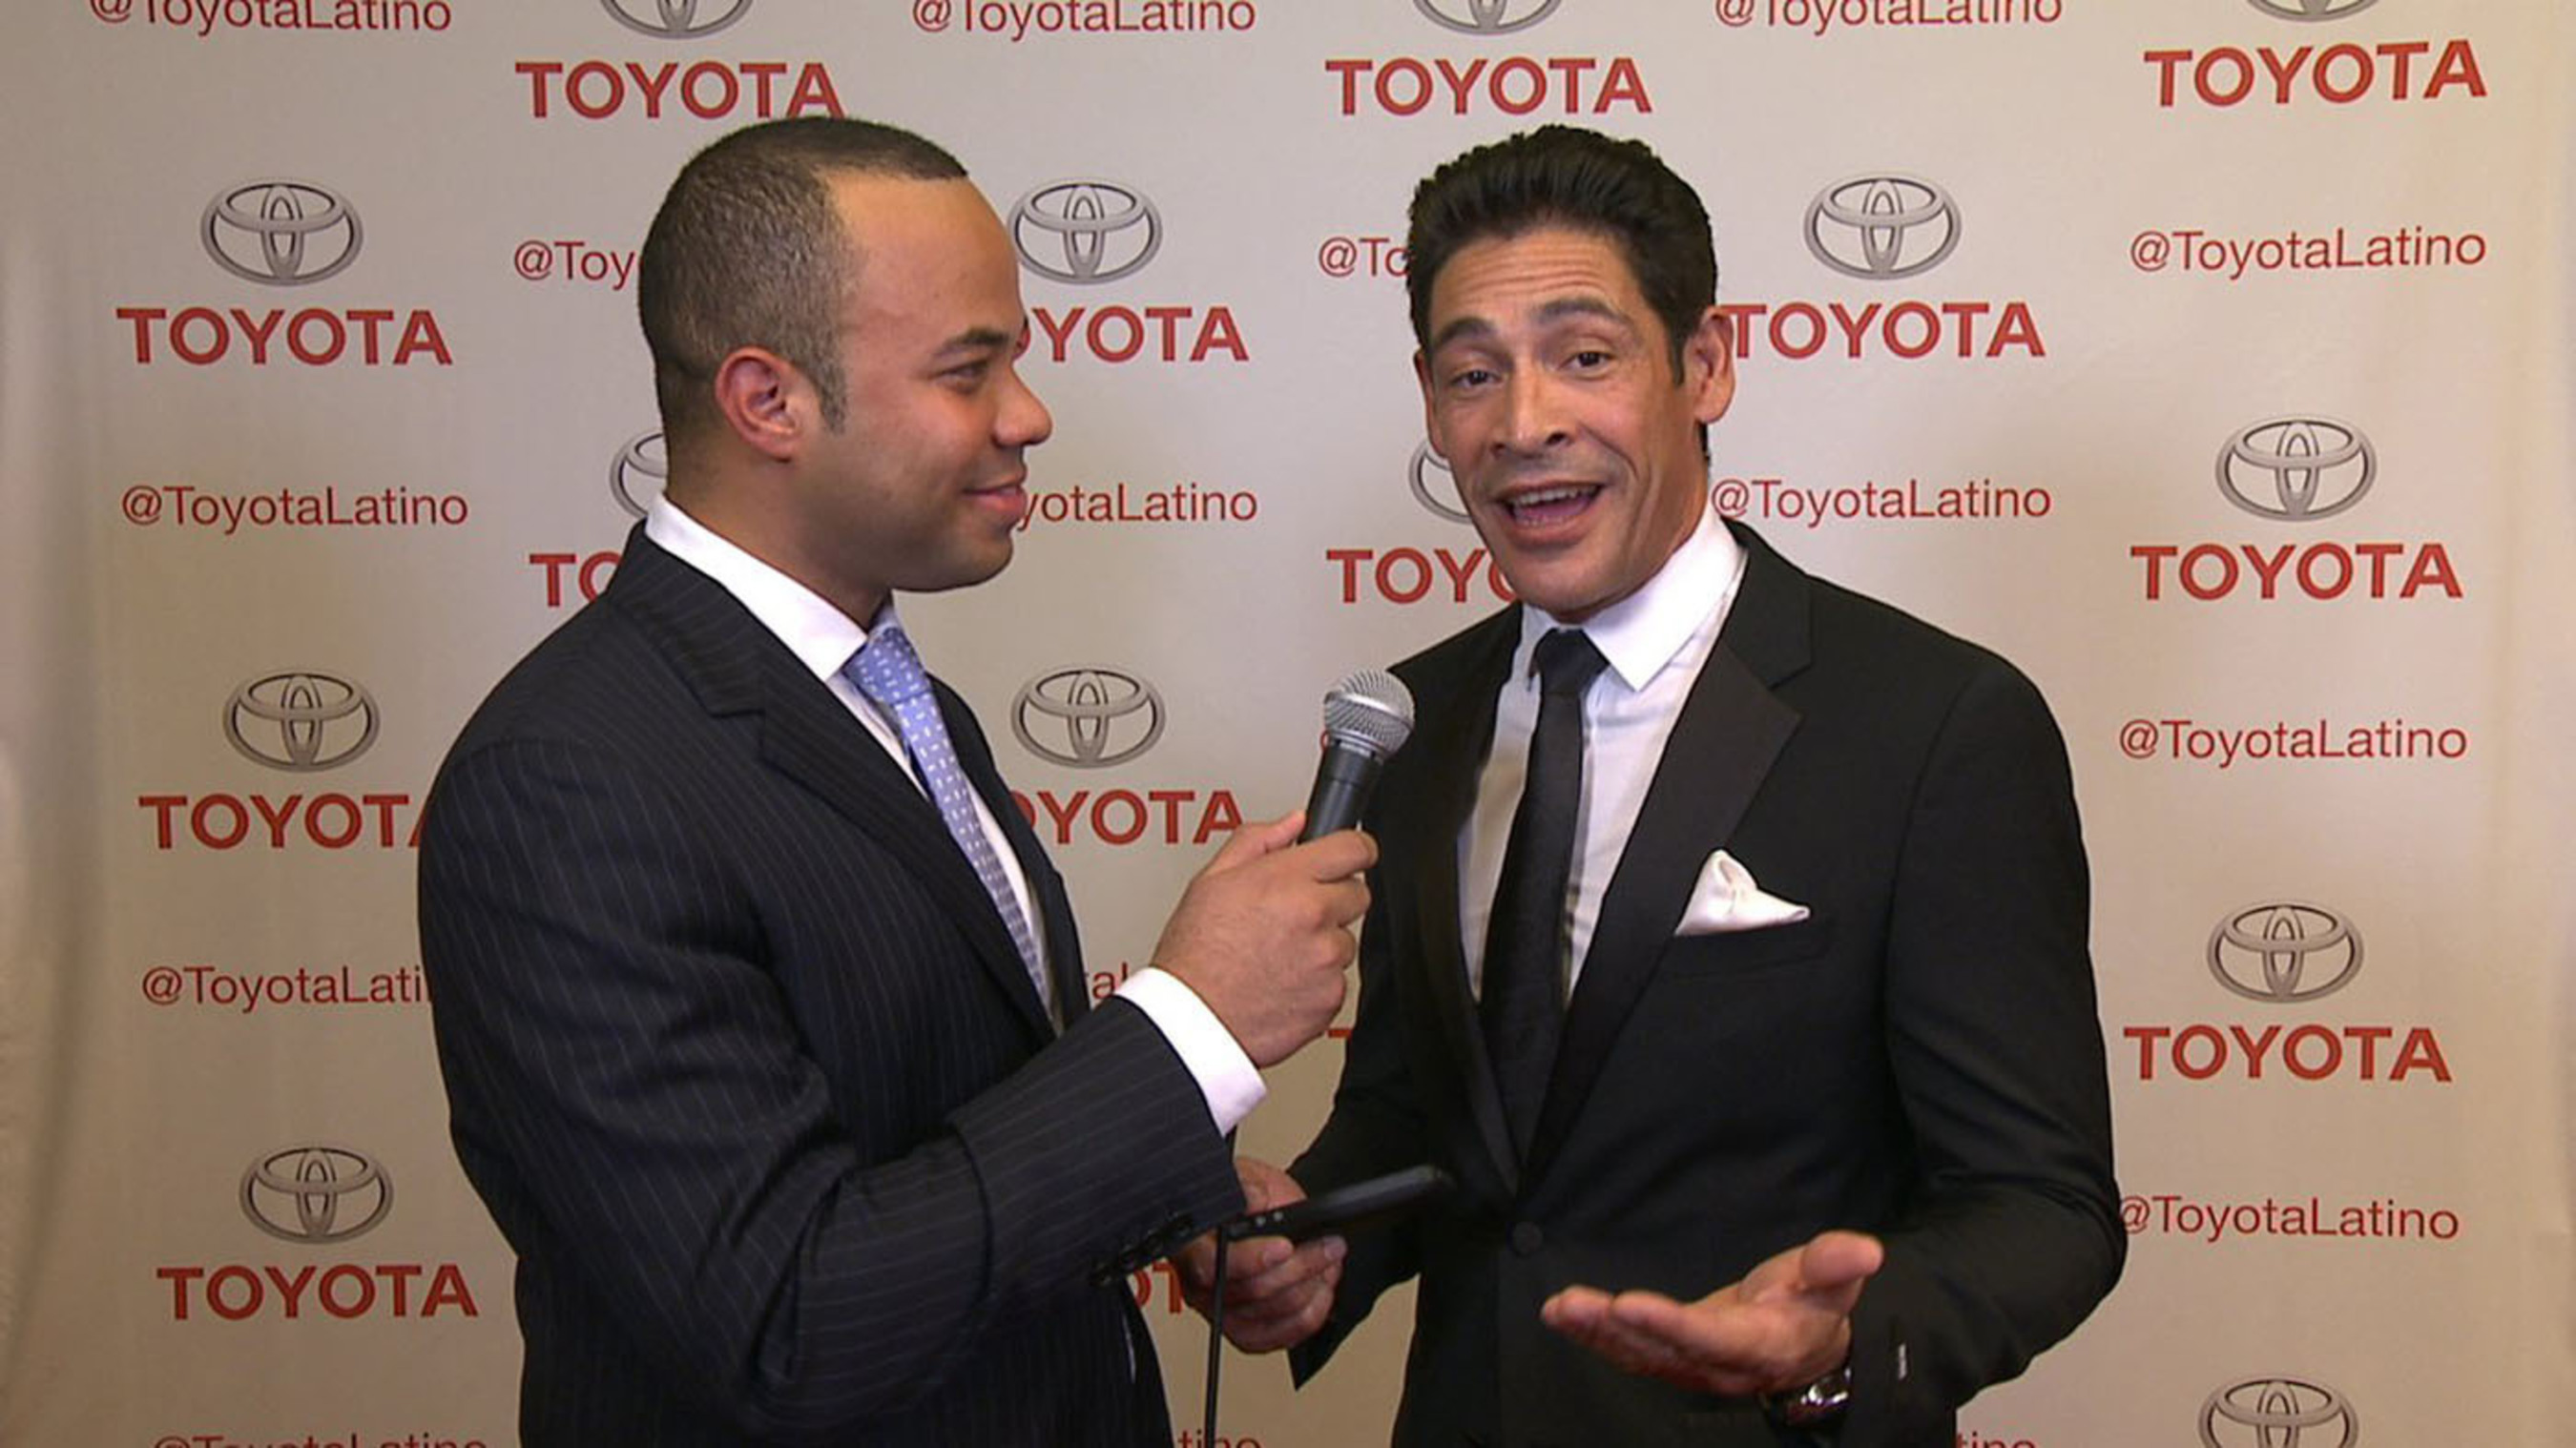 Toyota spokesperson Javier Moreno speaks with celebrity Johnny Lozada at the Latinos in Tech Innovation and Social Media 2012 conference. #LATISM12. (PRNewsFoto/Toyota) (PRNewsFoto/TOYOTA)